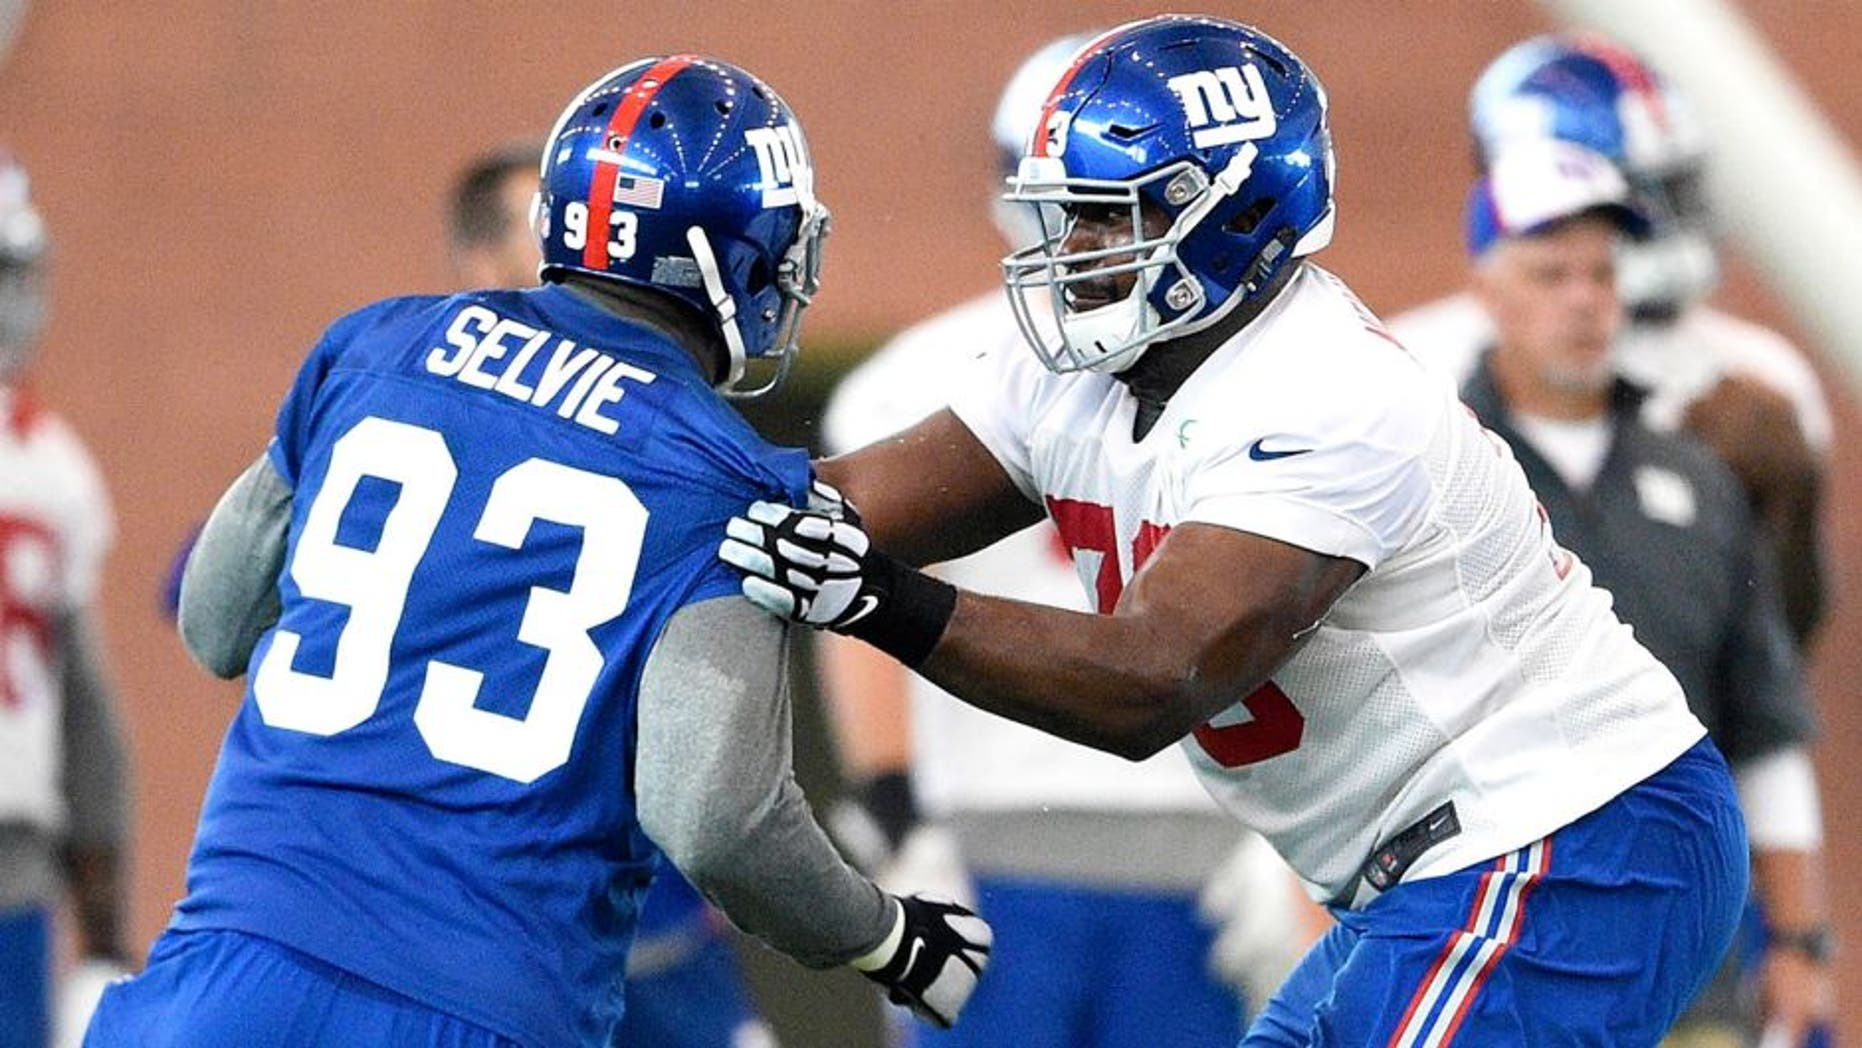 Jun 16, 2015; East Rutherford, NJ, USA; New York Giants tackle Marshall Newhouse (73) blocks defensive end George Selvie (93) during minicamp at Quest Diagnostics Training Center. Mandatory Credit: Steven Ryan-USA TODAY Sports